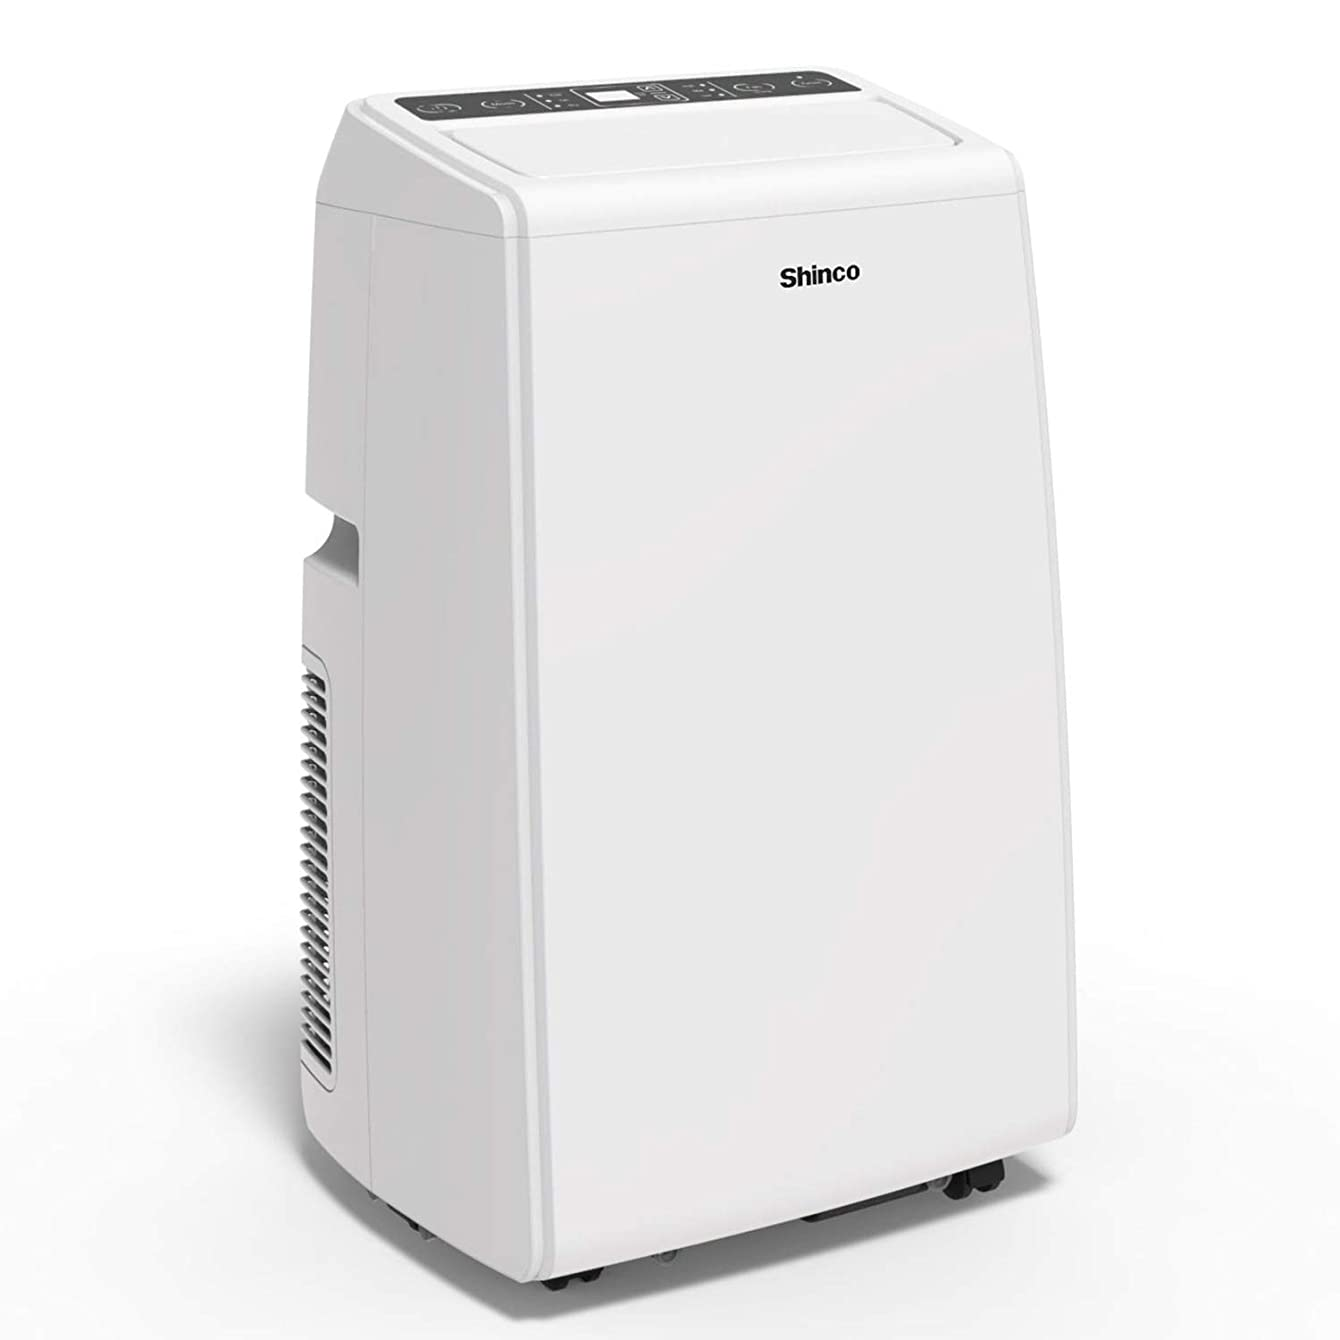 Shinco SPS5-12C 12,000 BTU Portable Air Conditioner Cool Fan Quiet Dehumidifier for Rooms Up to 400 Sq.Ft. LED Display, Remote Control, White